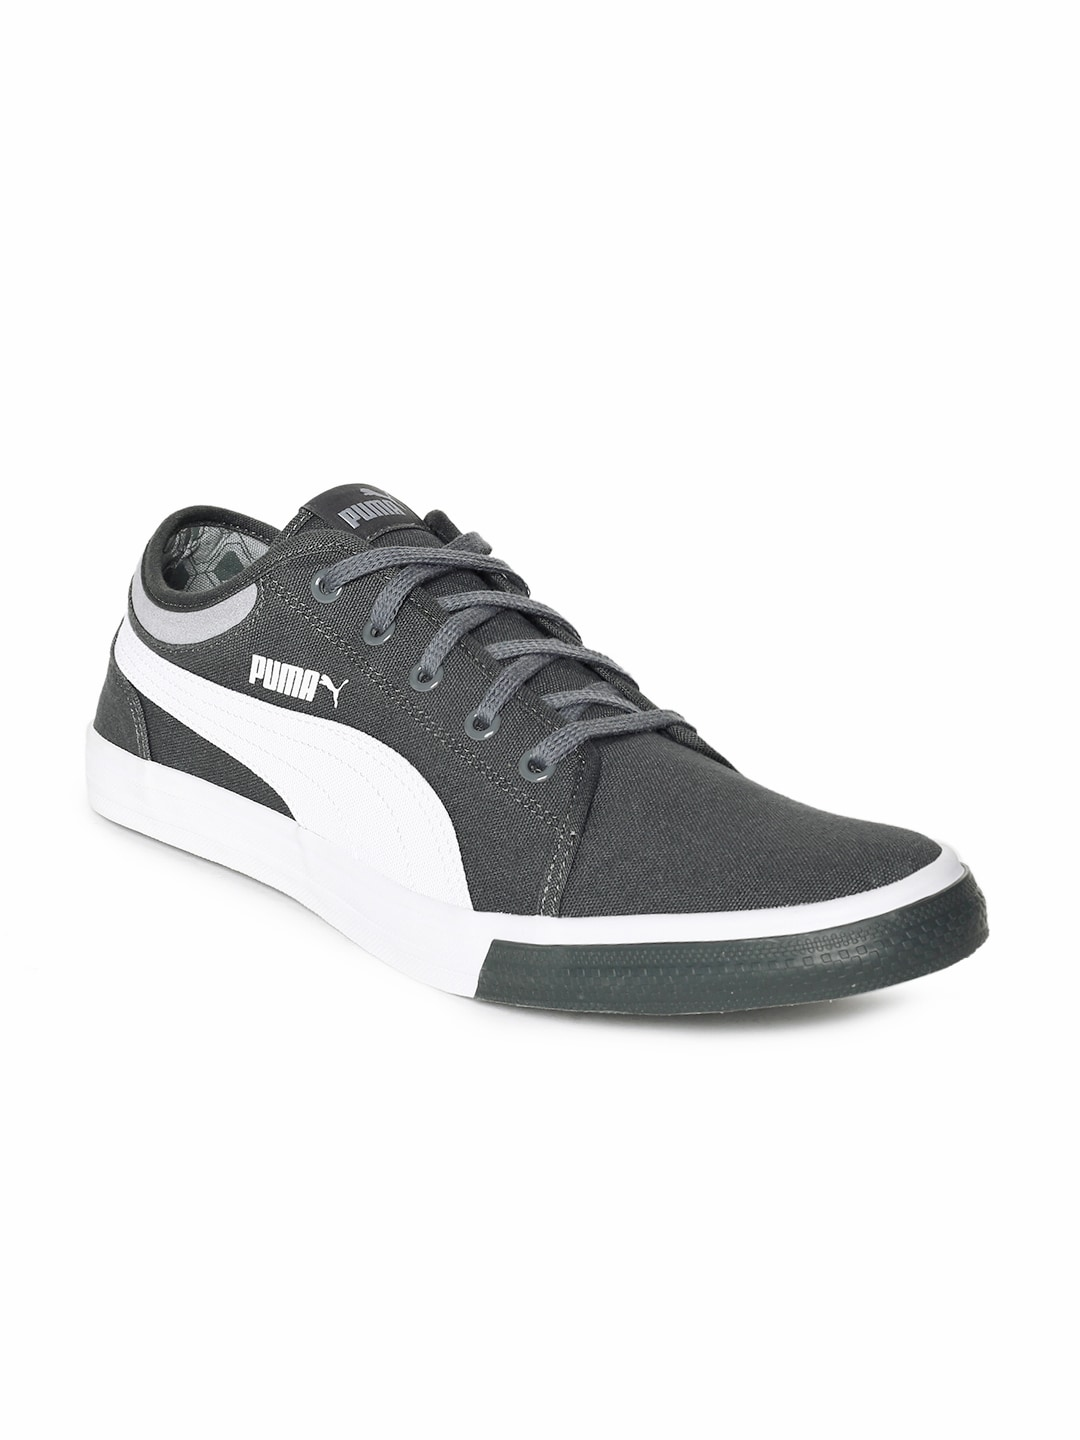 861f39fdcda2 Puma Gum Sole Shoes - Buy Puma Gum Sole Shoes online in India